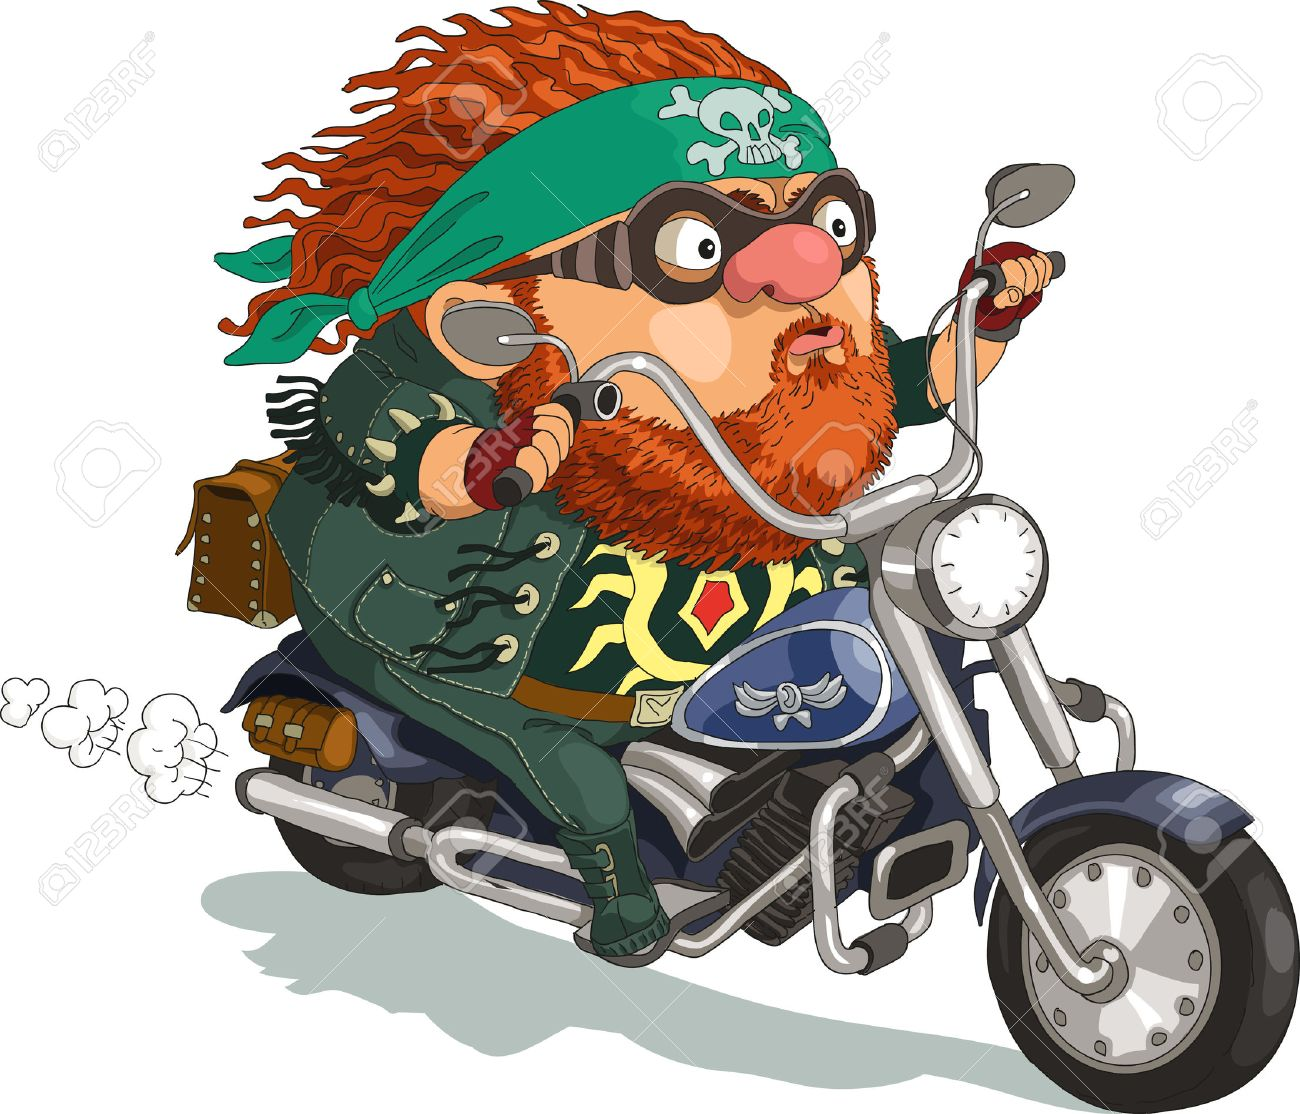 Funny cartoon. Vector illustration. ool bearded biker rides a motorcycle. Isolated objects. - 46515301